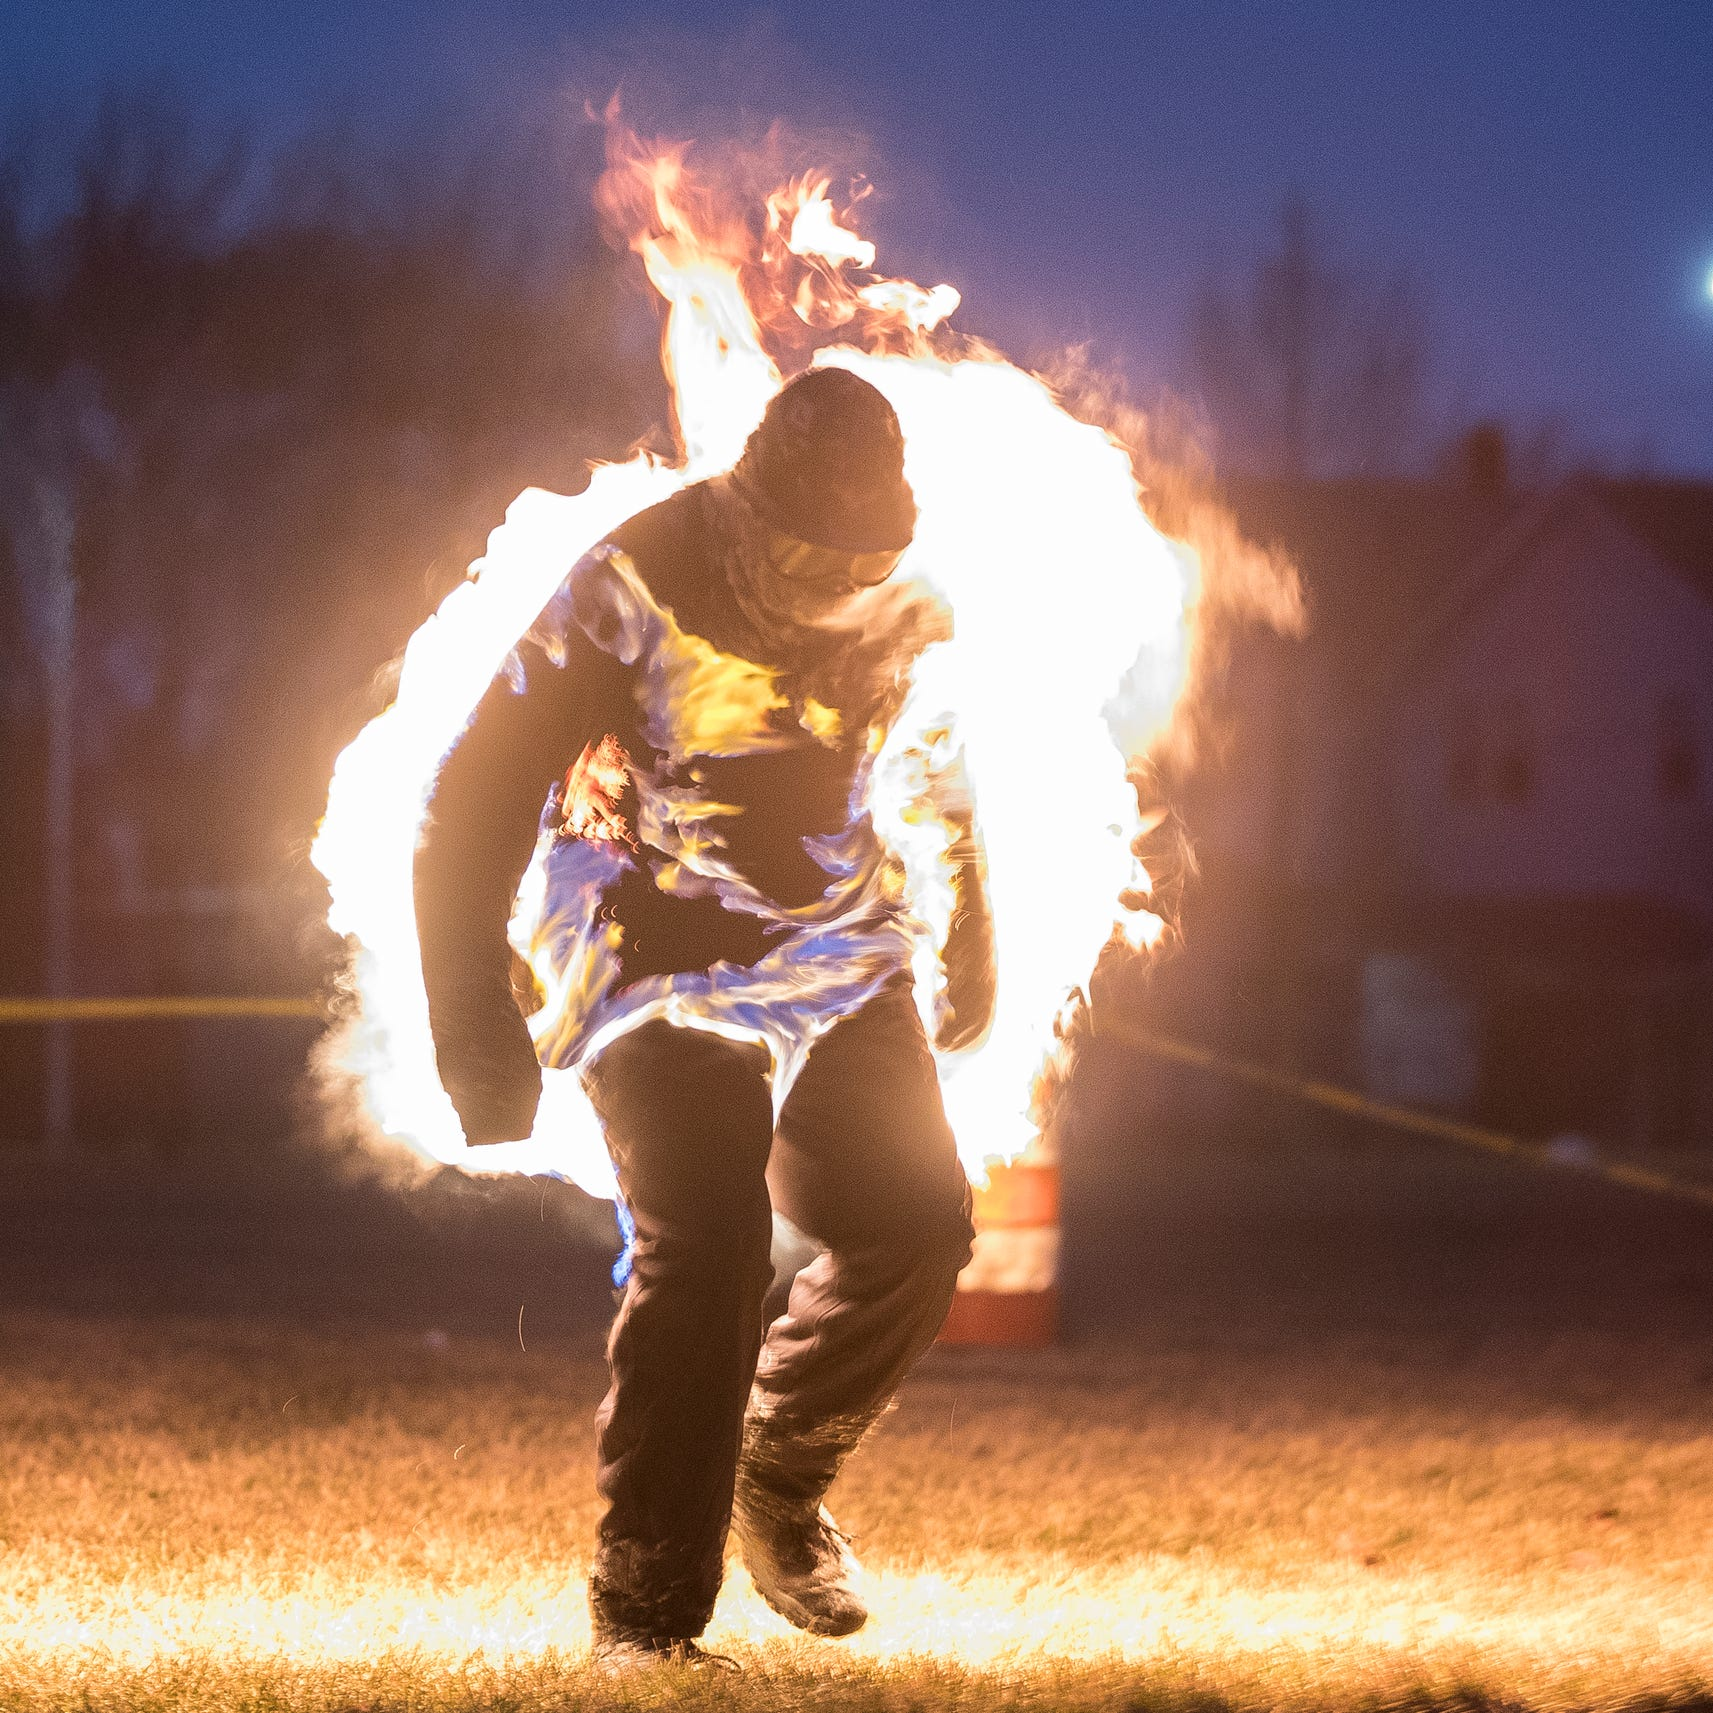 Man attempts world record for jumping jacks while on fire in Hamtramck